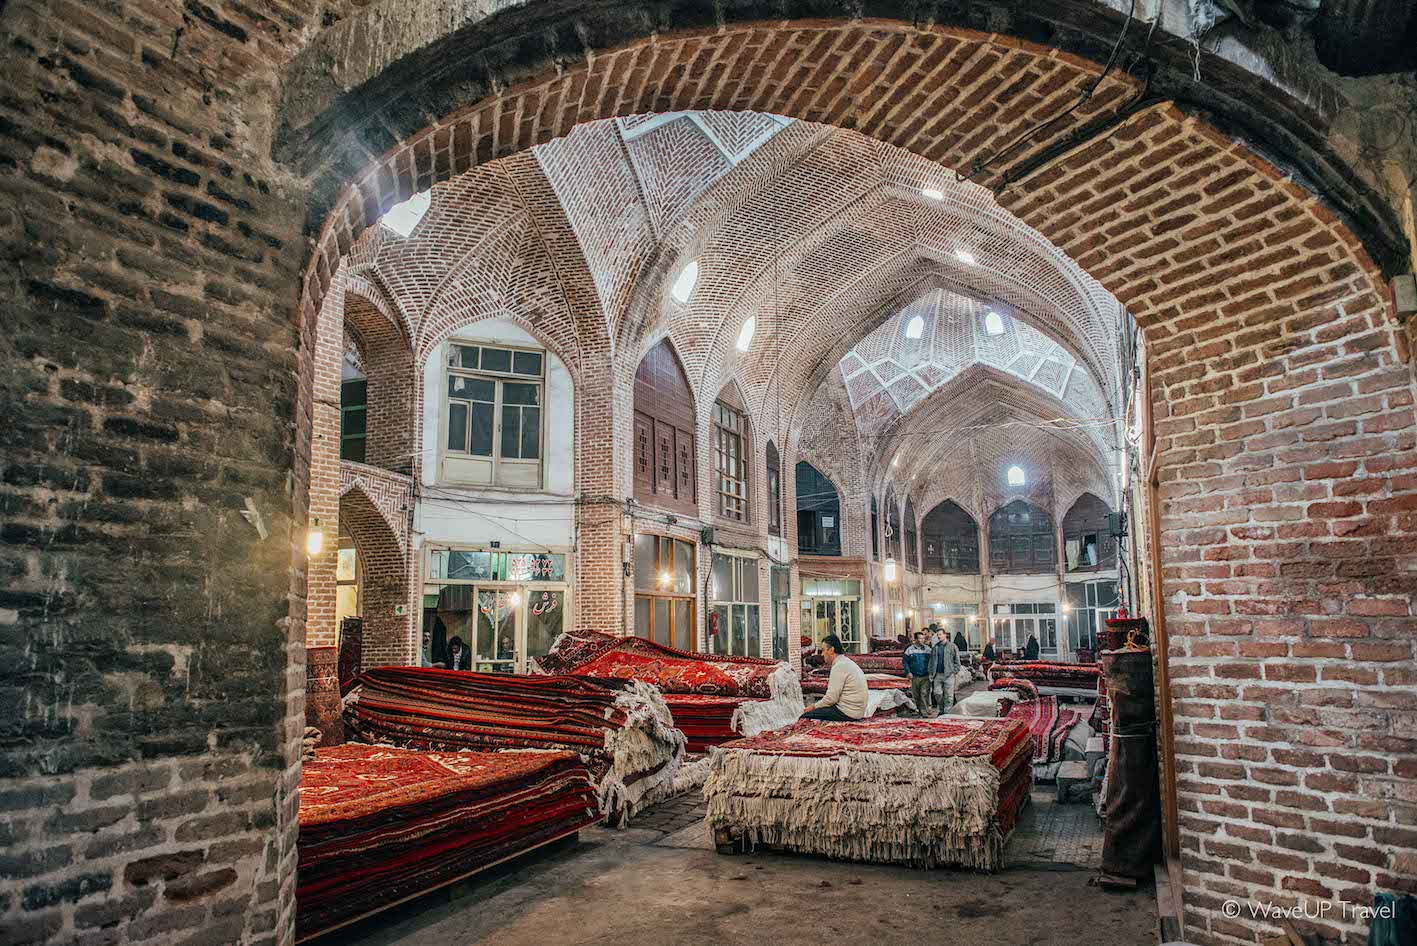 A must-see on Iran tour: carpet markets